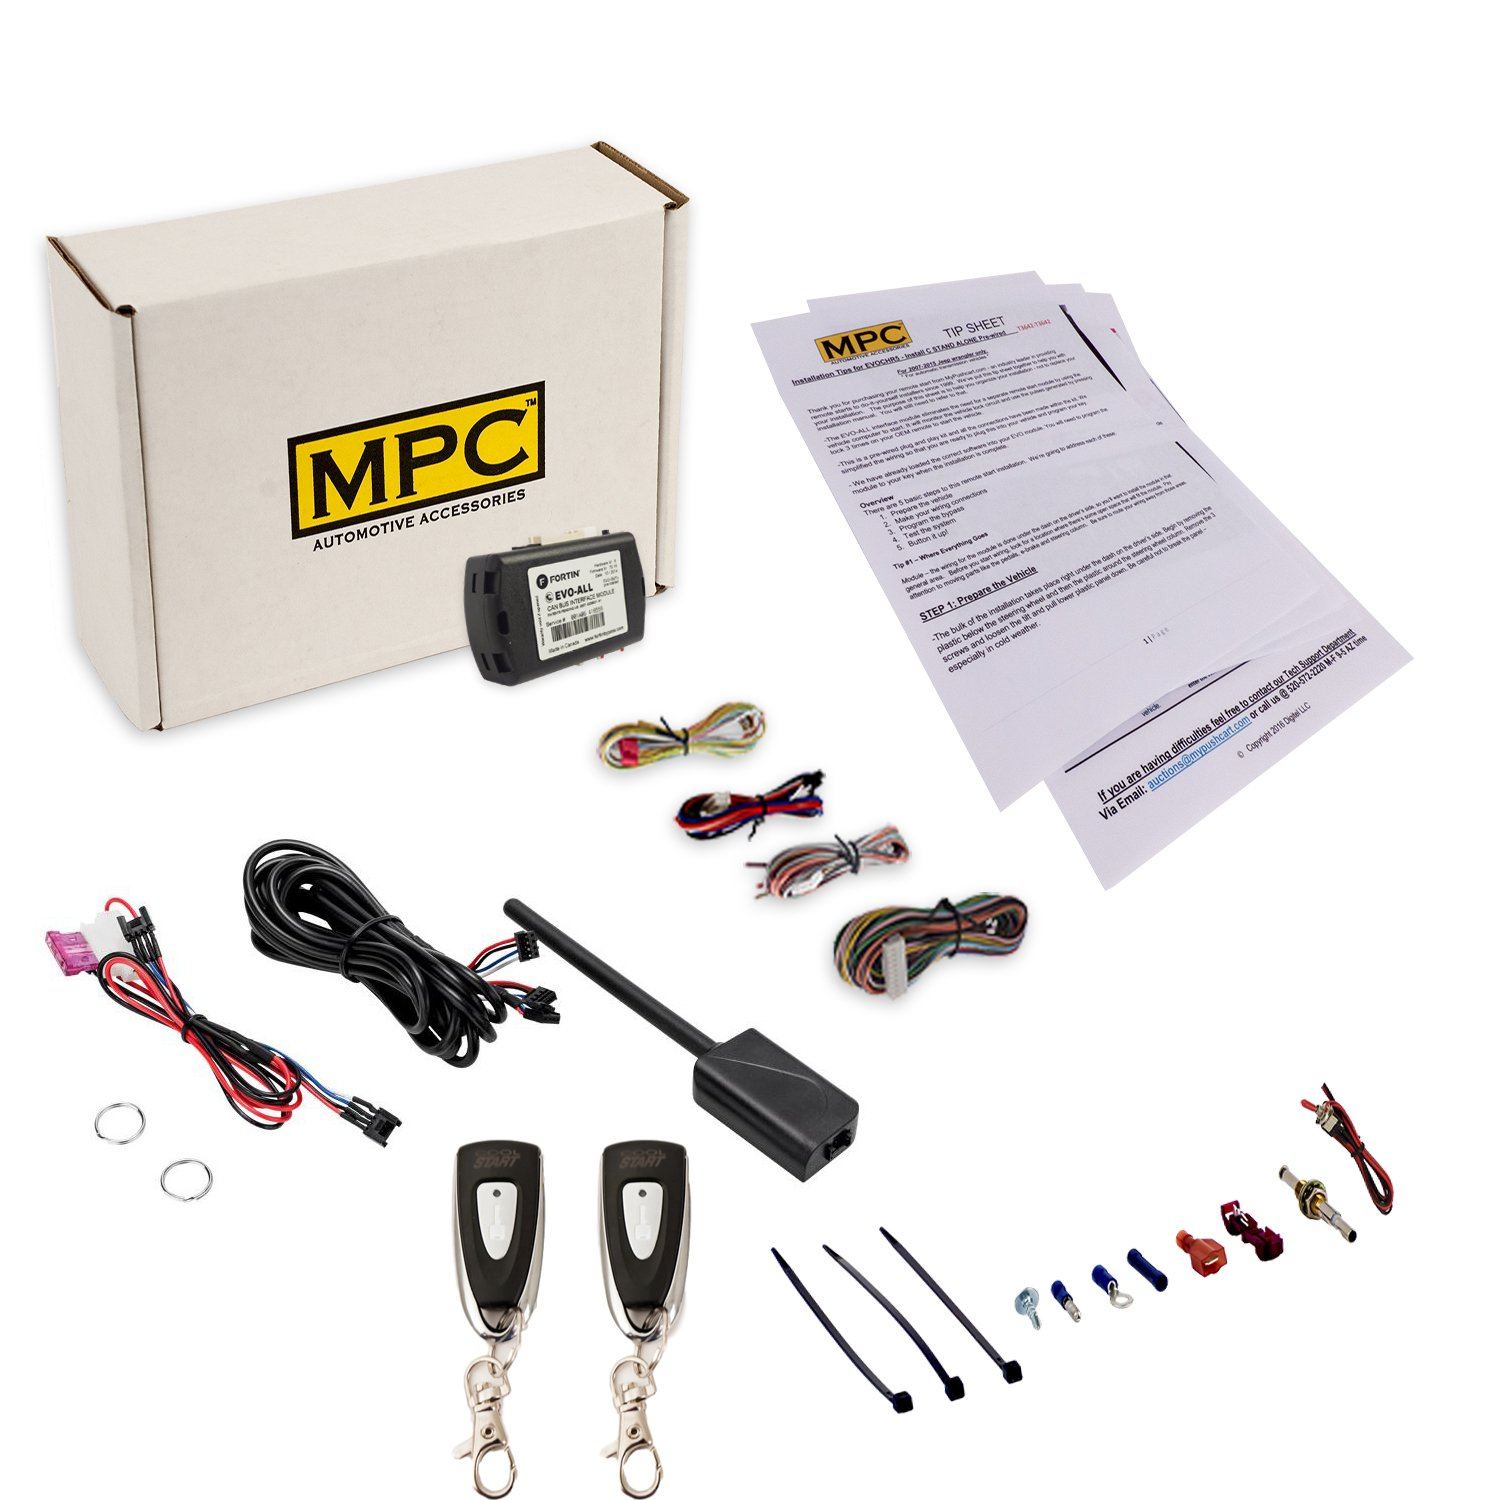 Mpc Complete 1 Button Extended Range Remote Start Kit Addon Fits Pushtostart Nissan Infiniti Vehicles W For 2007 2011 Toyota Camry Hybrid Firmware Preloaded Automotive